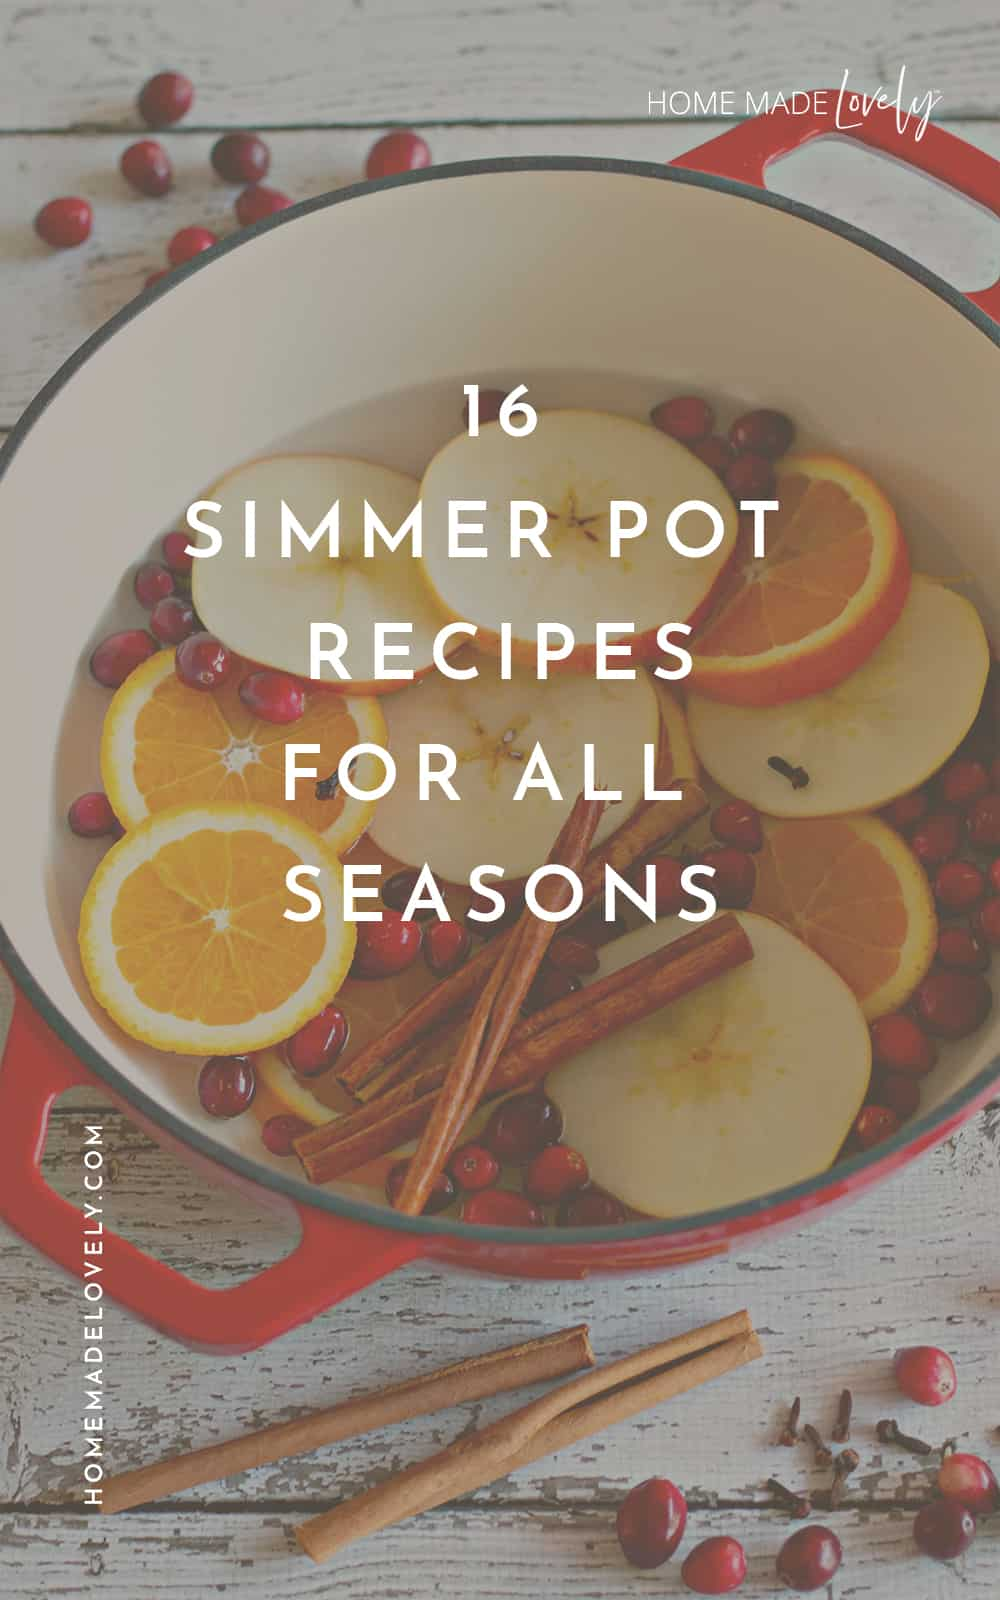 Simmer Pot Recipes and Ideas text over a pot filled with fruit slices